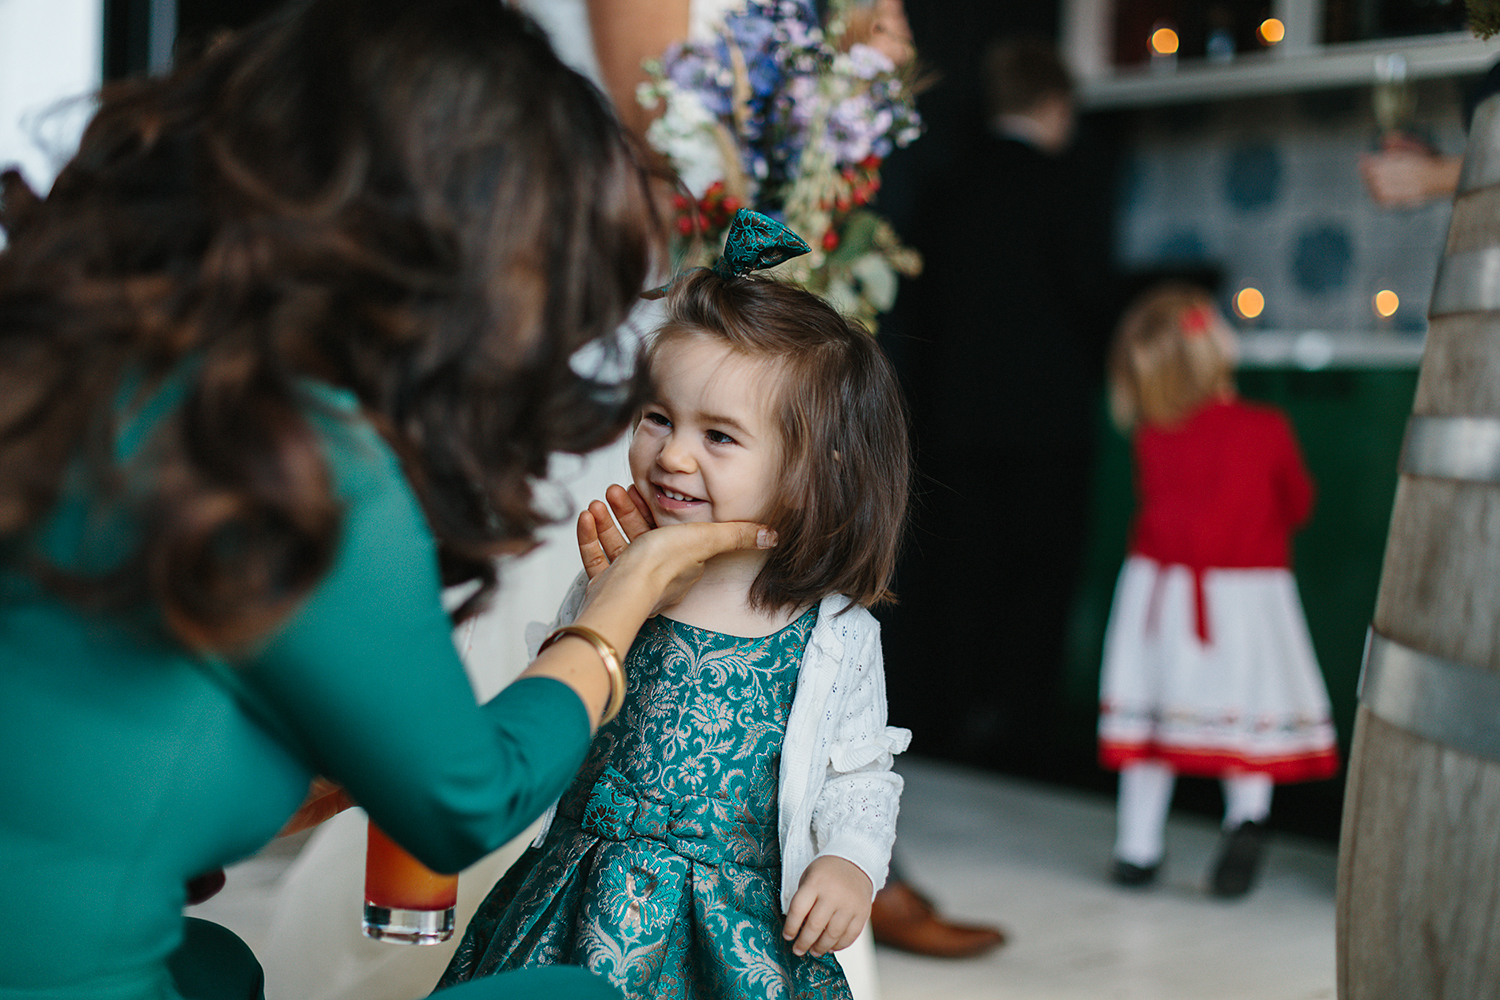 Prince-Edward-County-Wedding-Photographer-Drake-Devonshire-Elopement-Ryanne-Hollies-Photography-junebug-weddings-best-of-the-best-2018-cocktail-hour-kids-cute.jpg